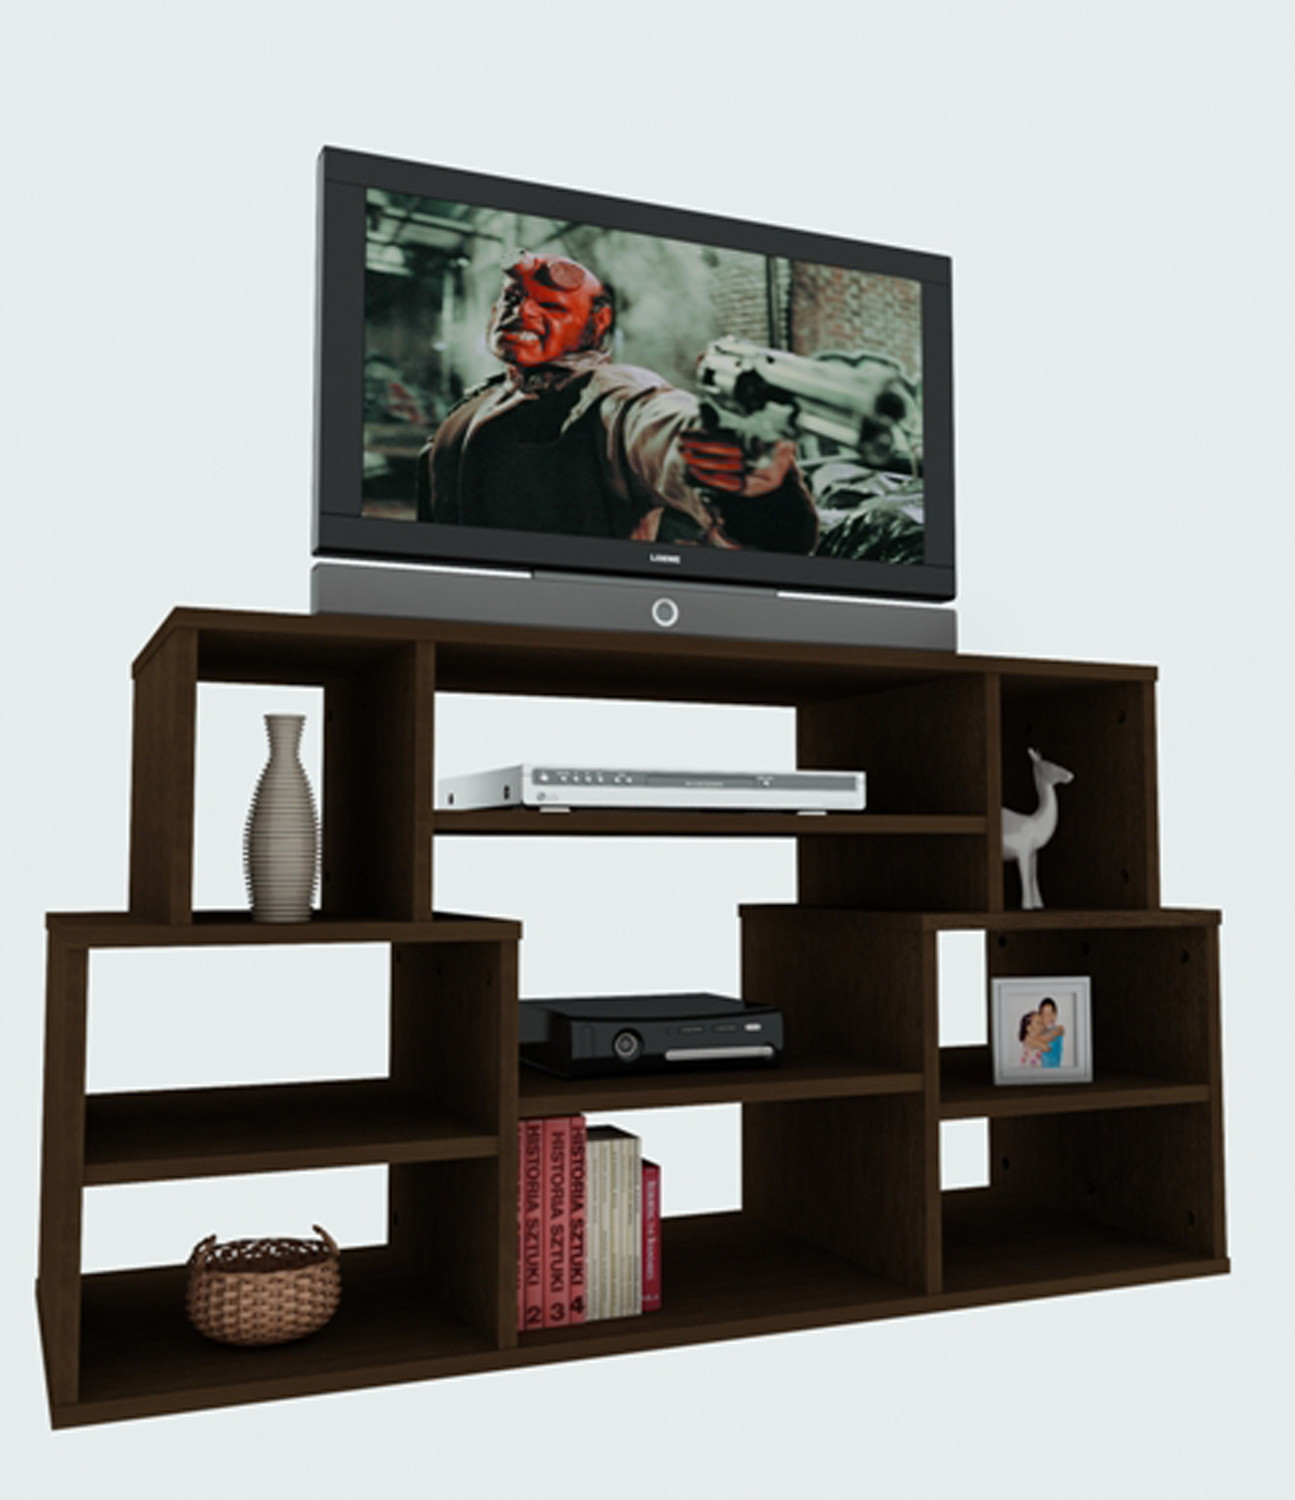 Muebles Para Tv Modernos Magnífico Tv 432 Sistemasrta Free Download Borrow and Of Muebles Para Tv Modernos Nuevo Muebles Living Edor Modernos Google Search